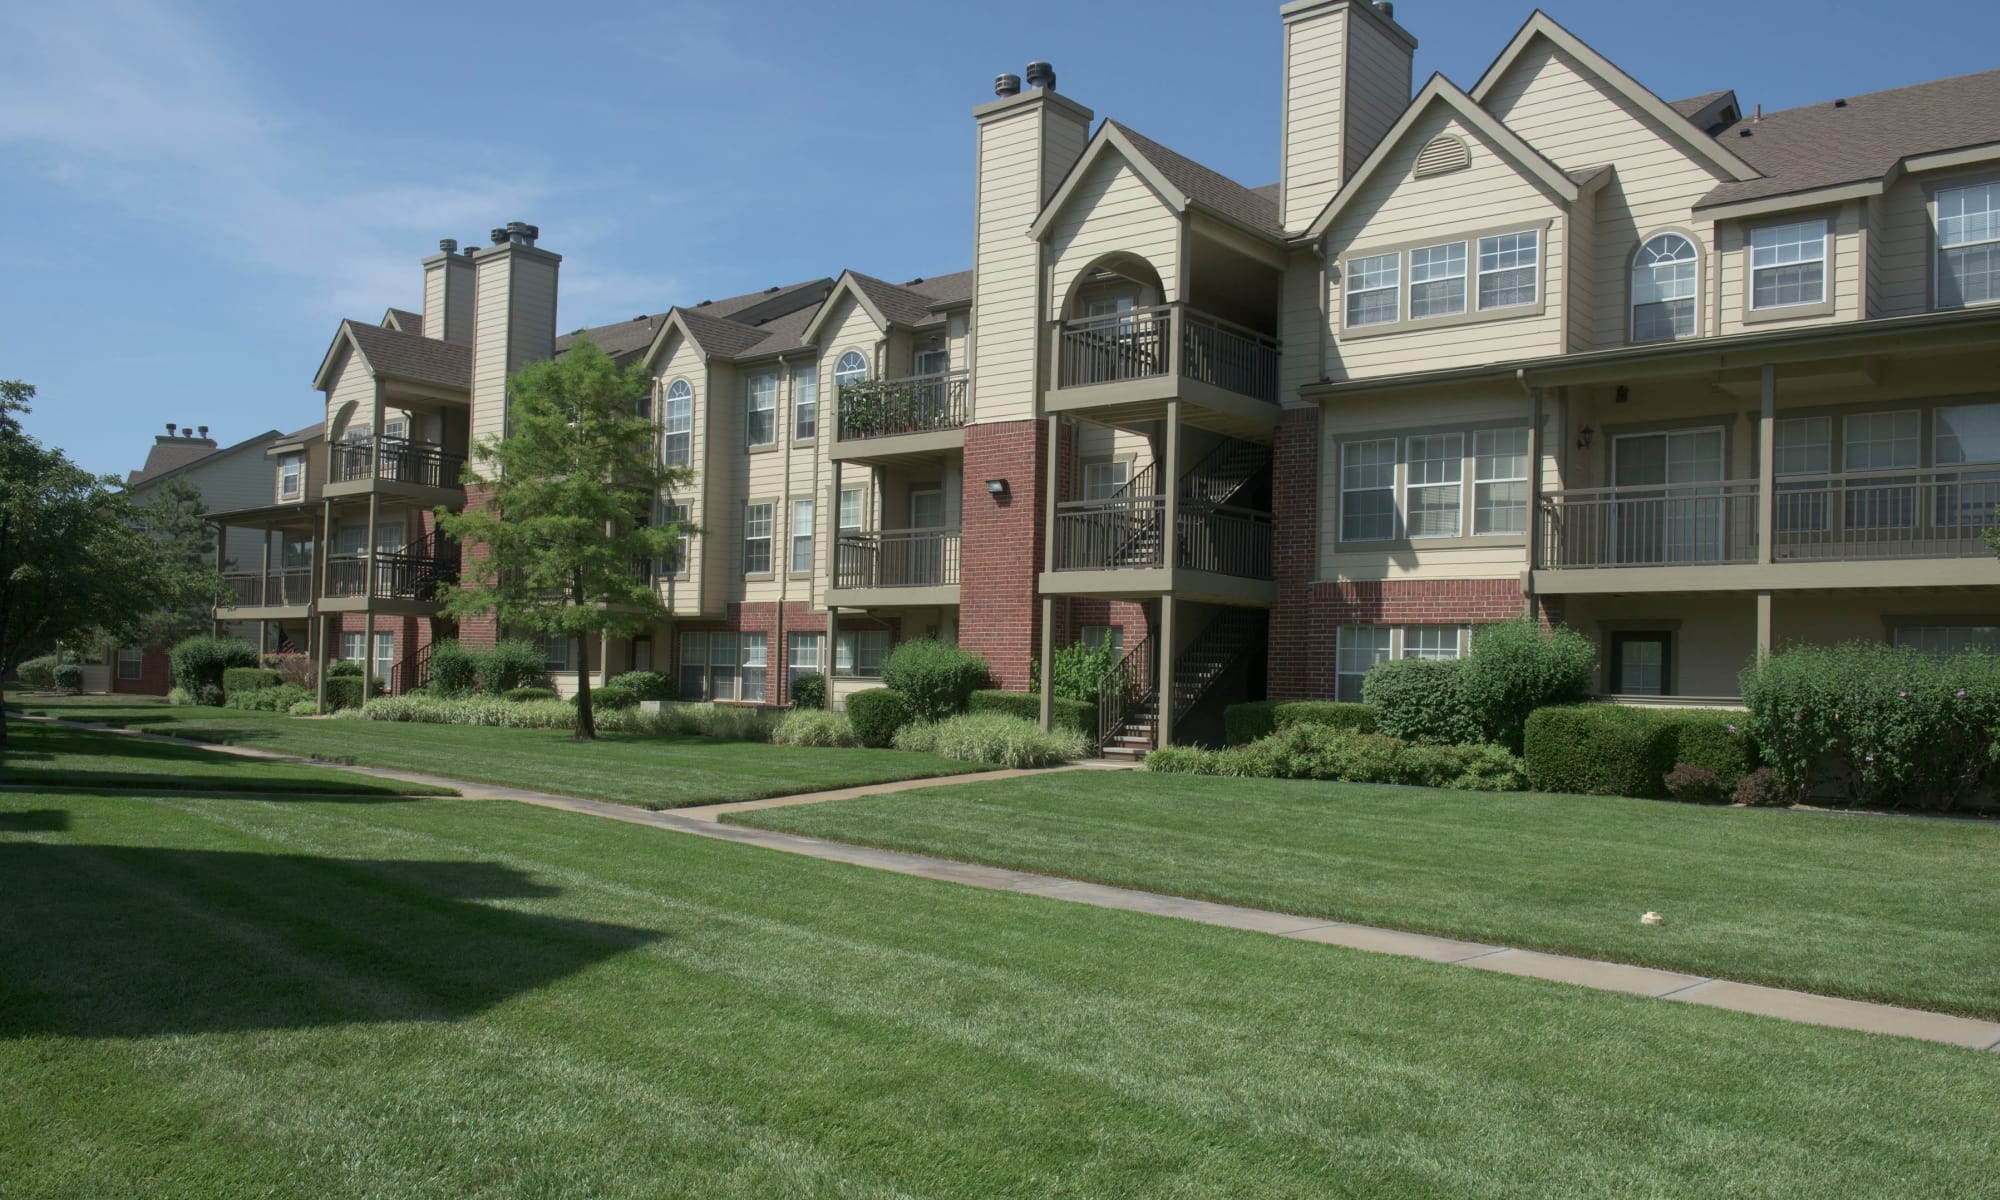 Apartments for rent in northwest wichita ks newport wichita - One bedroom apartments wichita ks ...